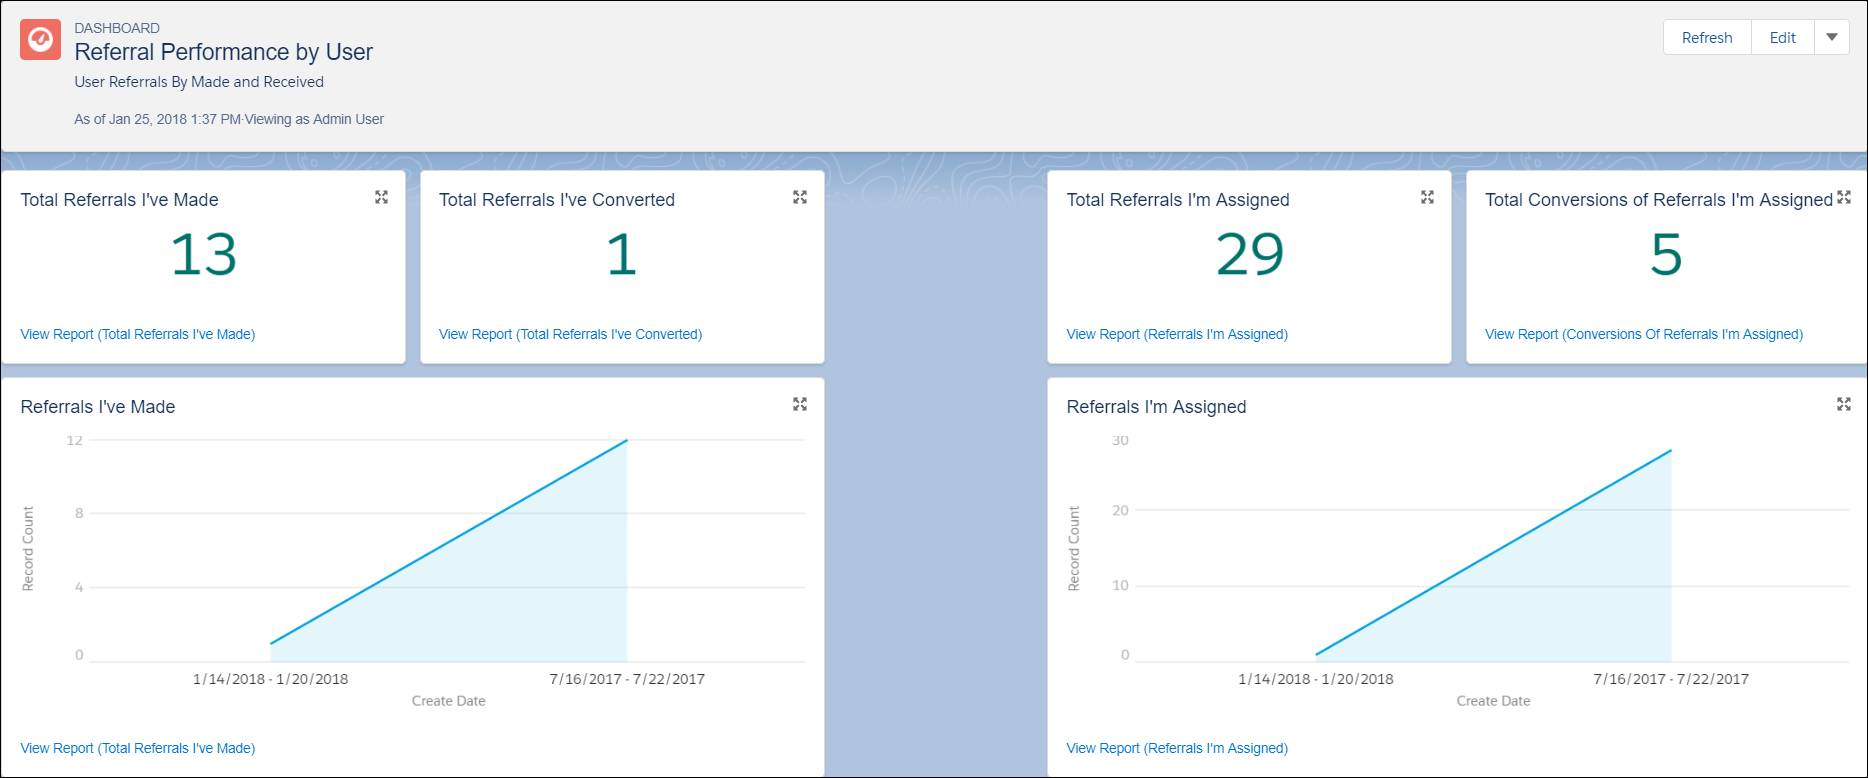 Referral Performance by User dashboard showing Total Referrals I've Made, Total Referrals I've Converted, Total Referrals I'm Assigned, and Total Conversion of Referrals I'm Assigned